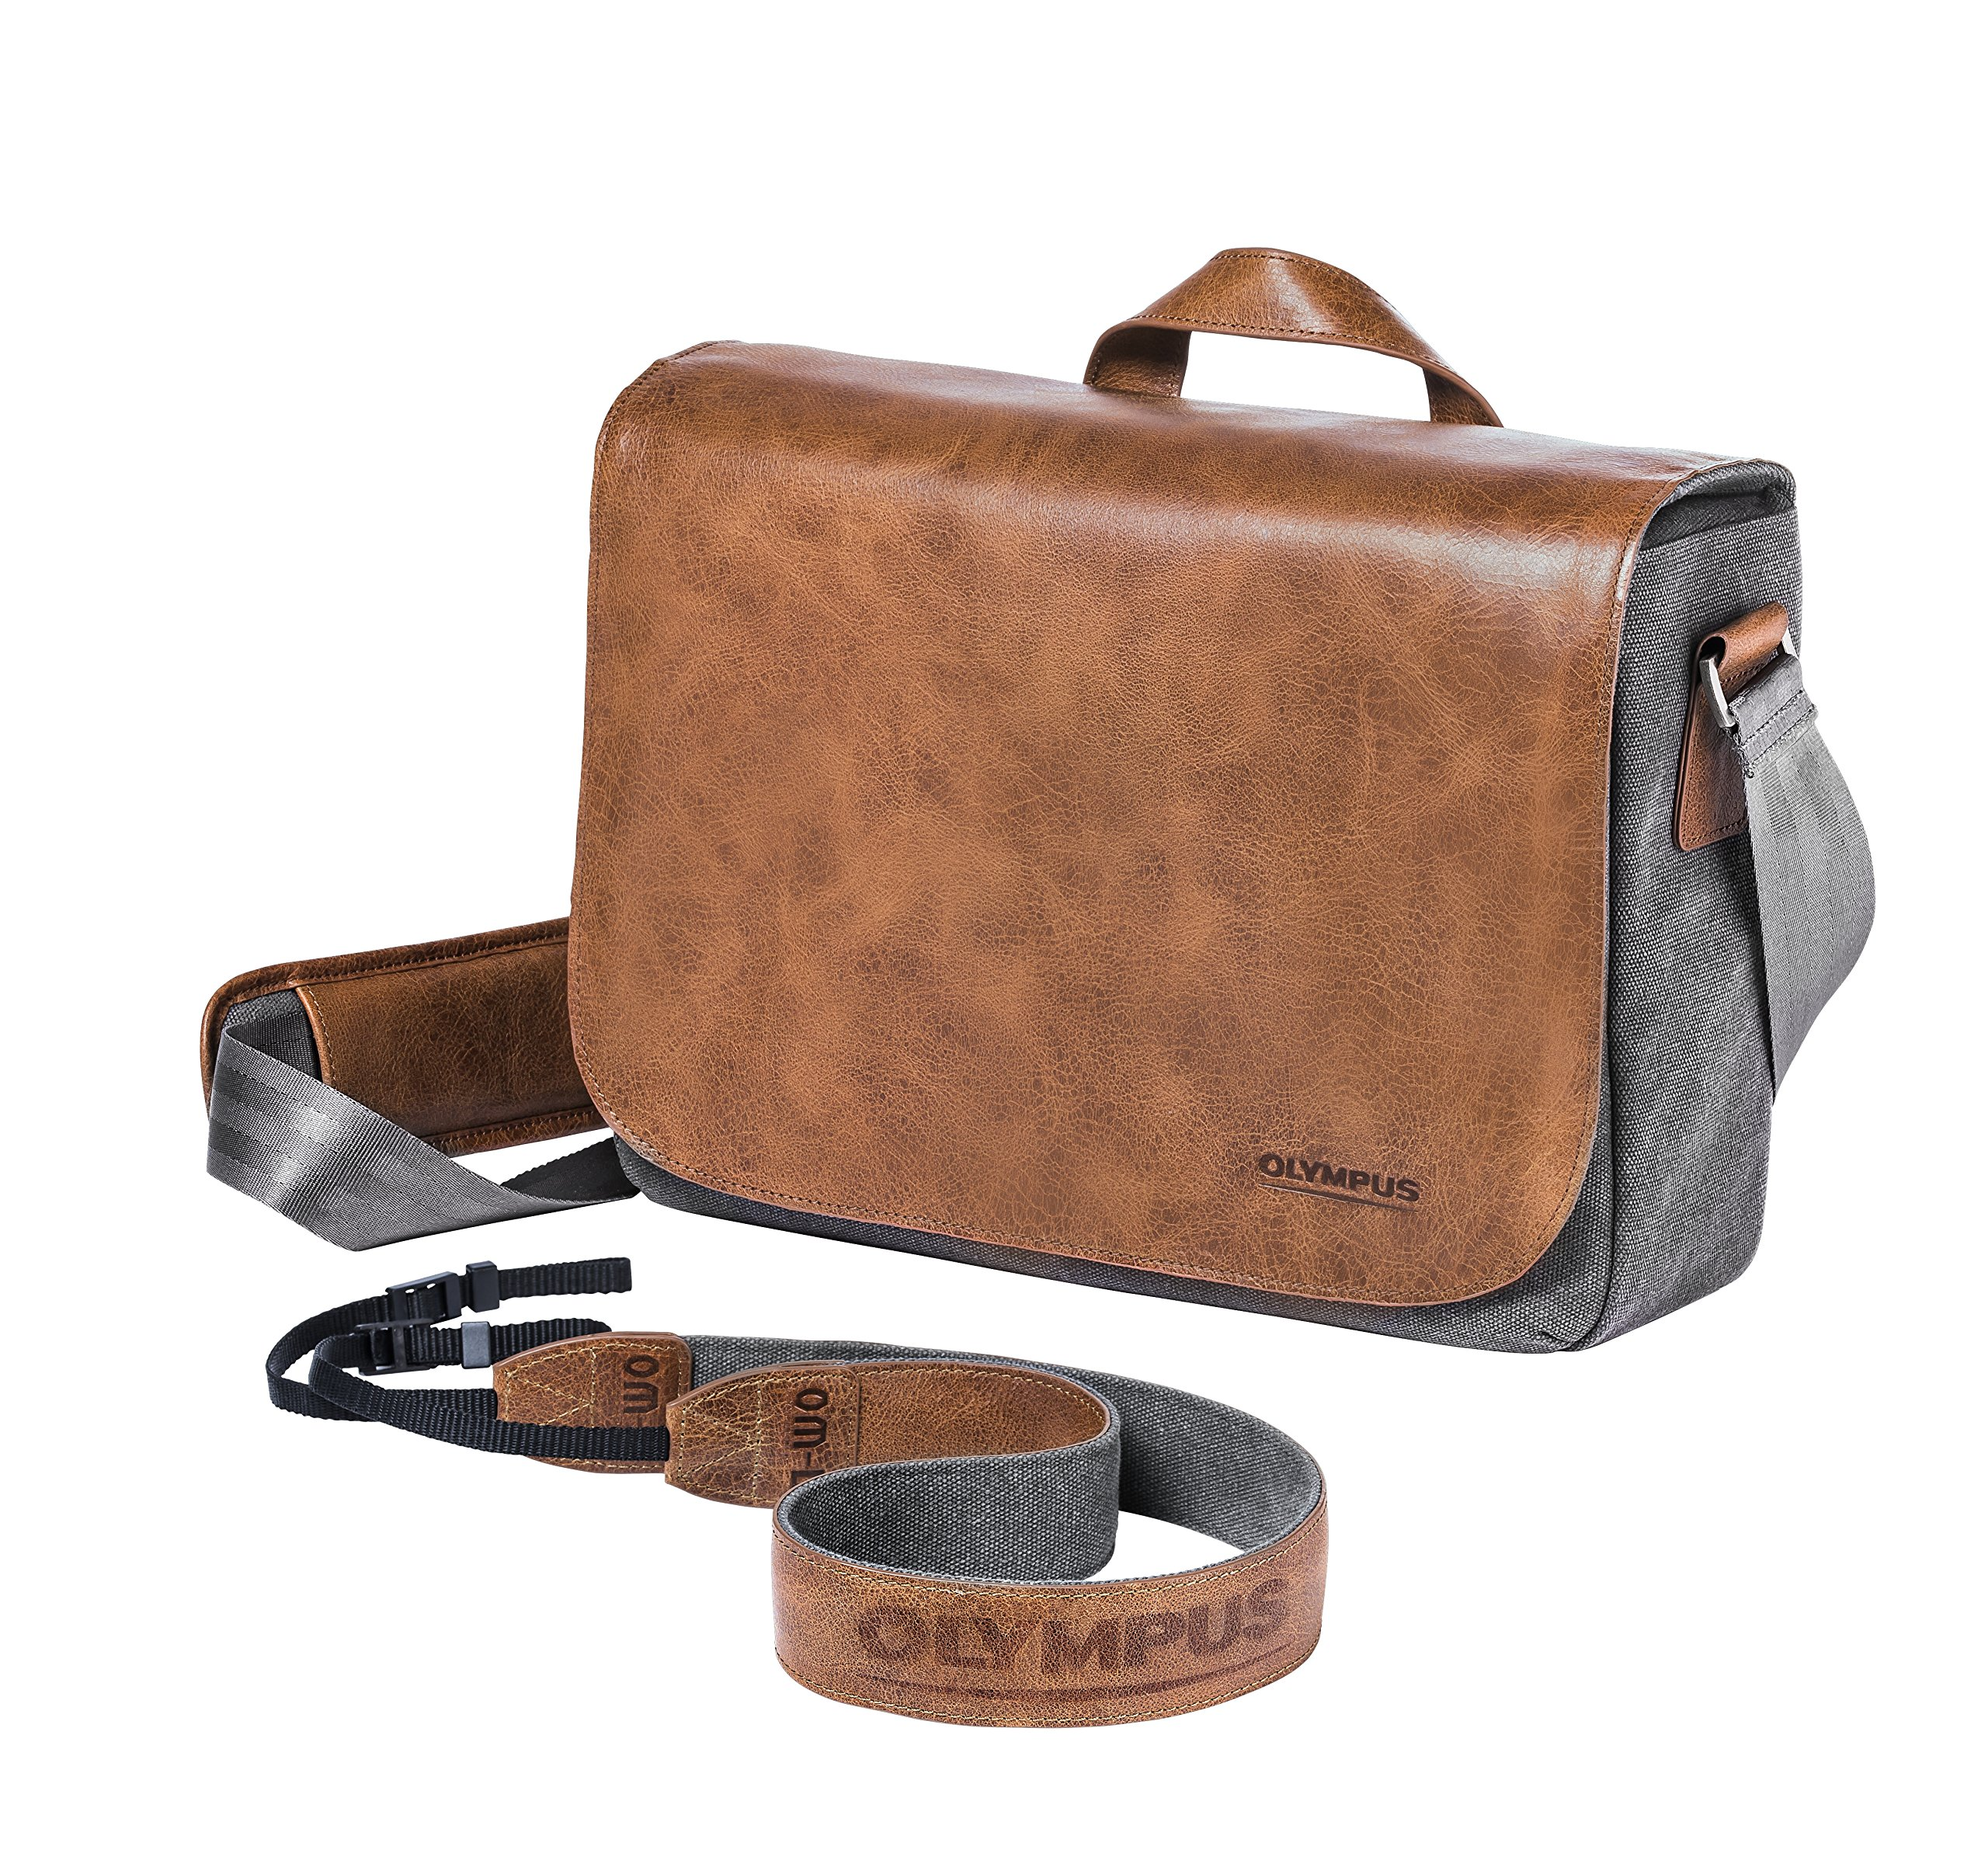 Olympus OM-D Messenger Leather Bag Incl. Strap, E0414738 (Incl. Strap)